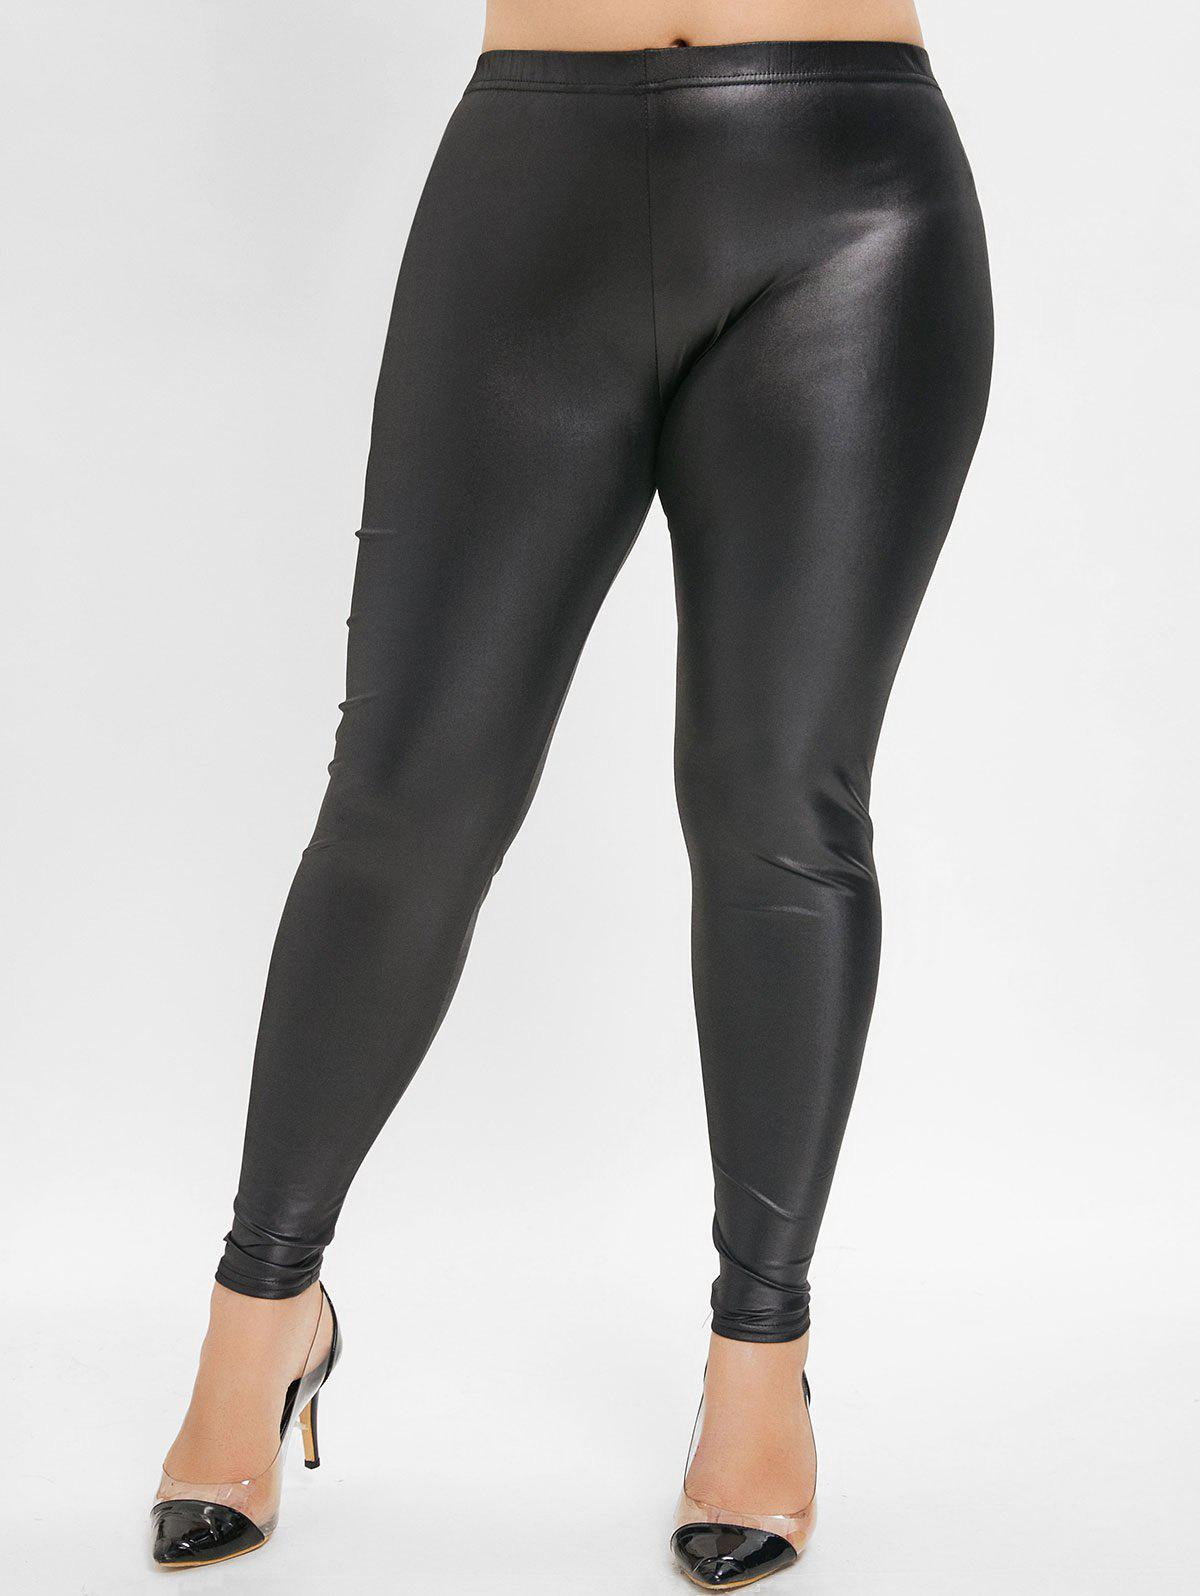 1805b0a189c4d 38% OFF   2019 Elastic Waist Plus Size Faux Leather Leggings ...